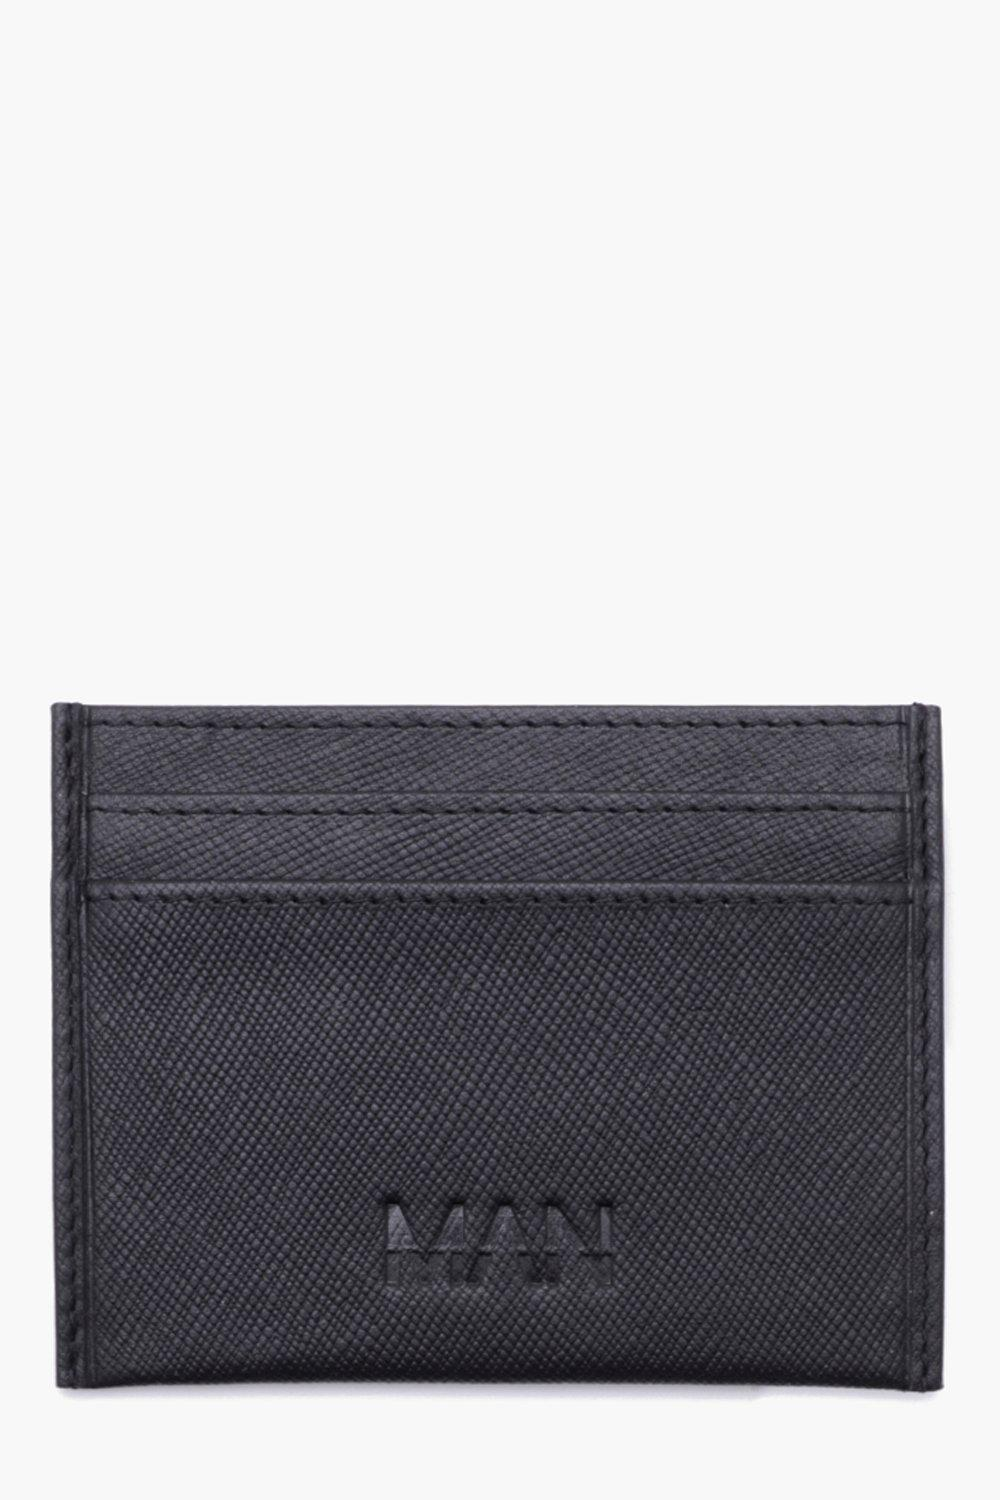 boohooMAN black Real Leather Saffiano Emboss Card Holder